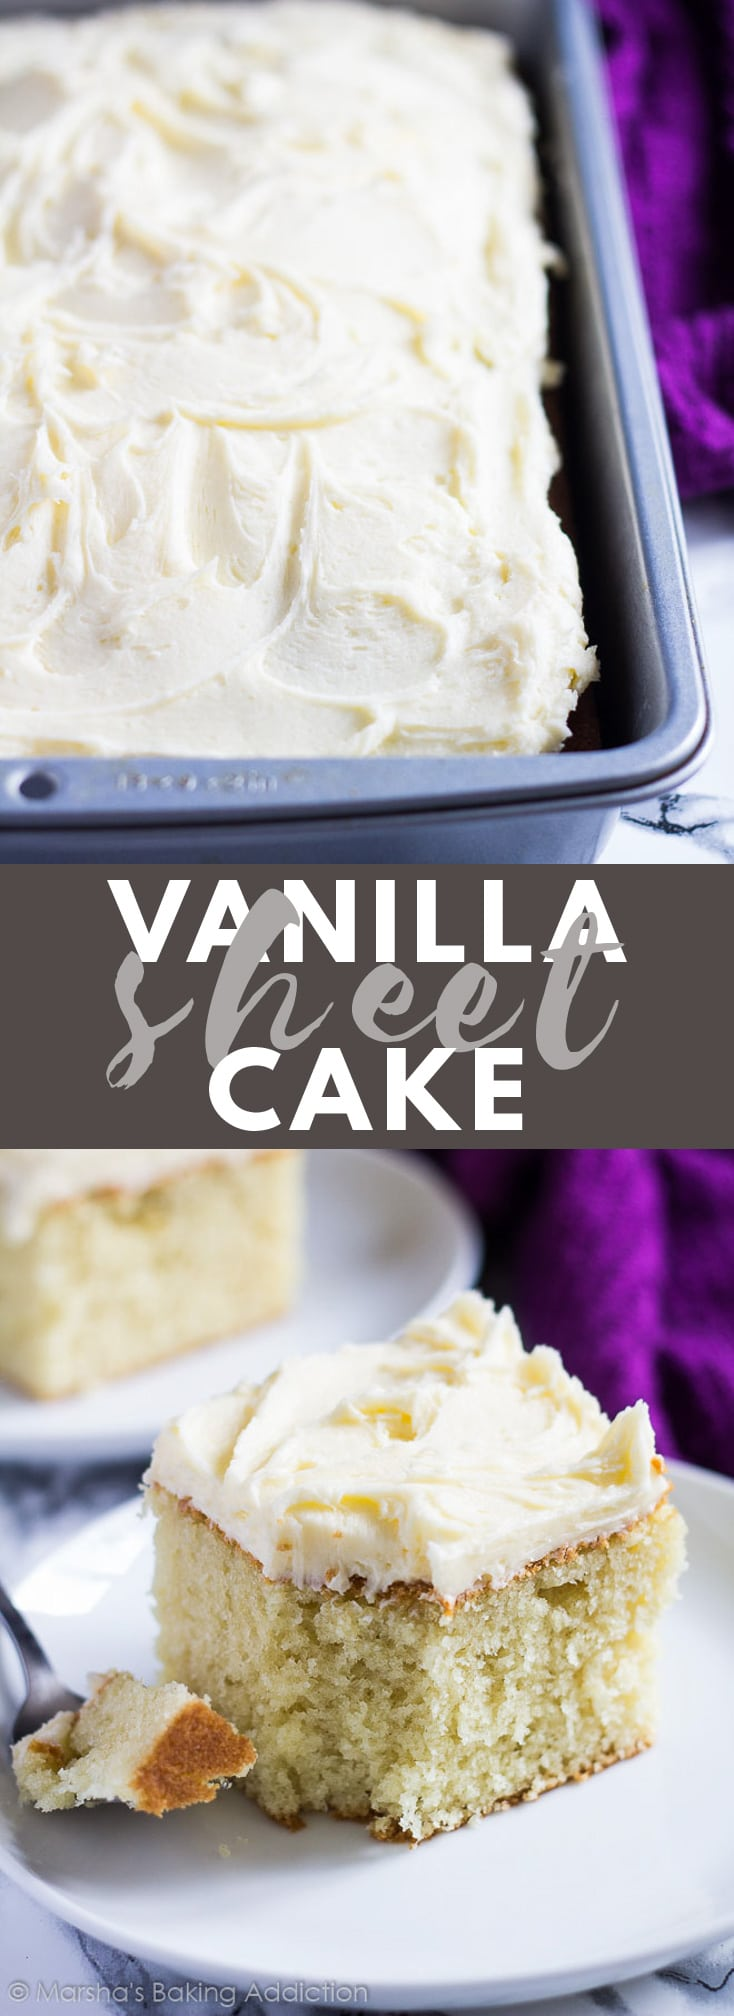 Perfect Vanilla Sheet Cake - Deliciously moist and fluffy vanilla cake baked in a rectangle pan, and topped with scrumptiously creamy vanilla buttercream frosting! #vanilla #sheetcake #cakerecipes #recipe